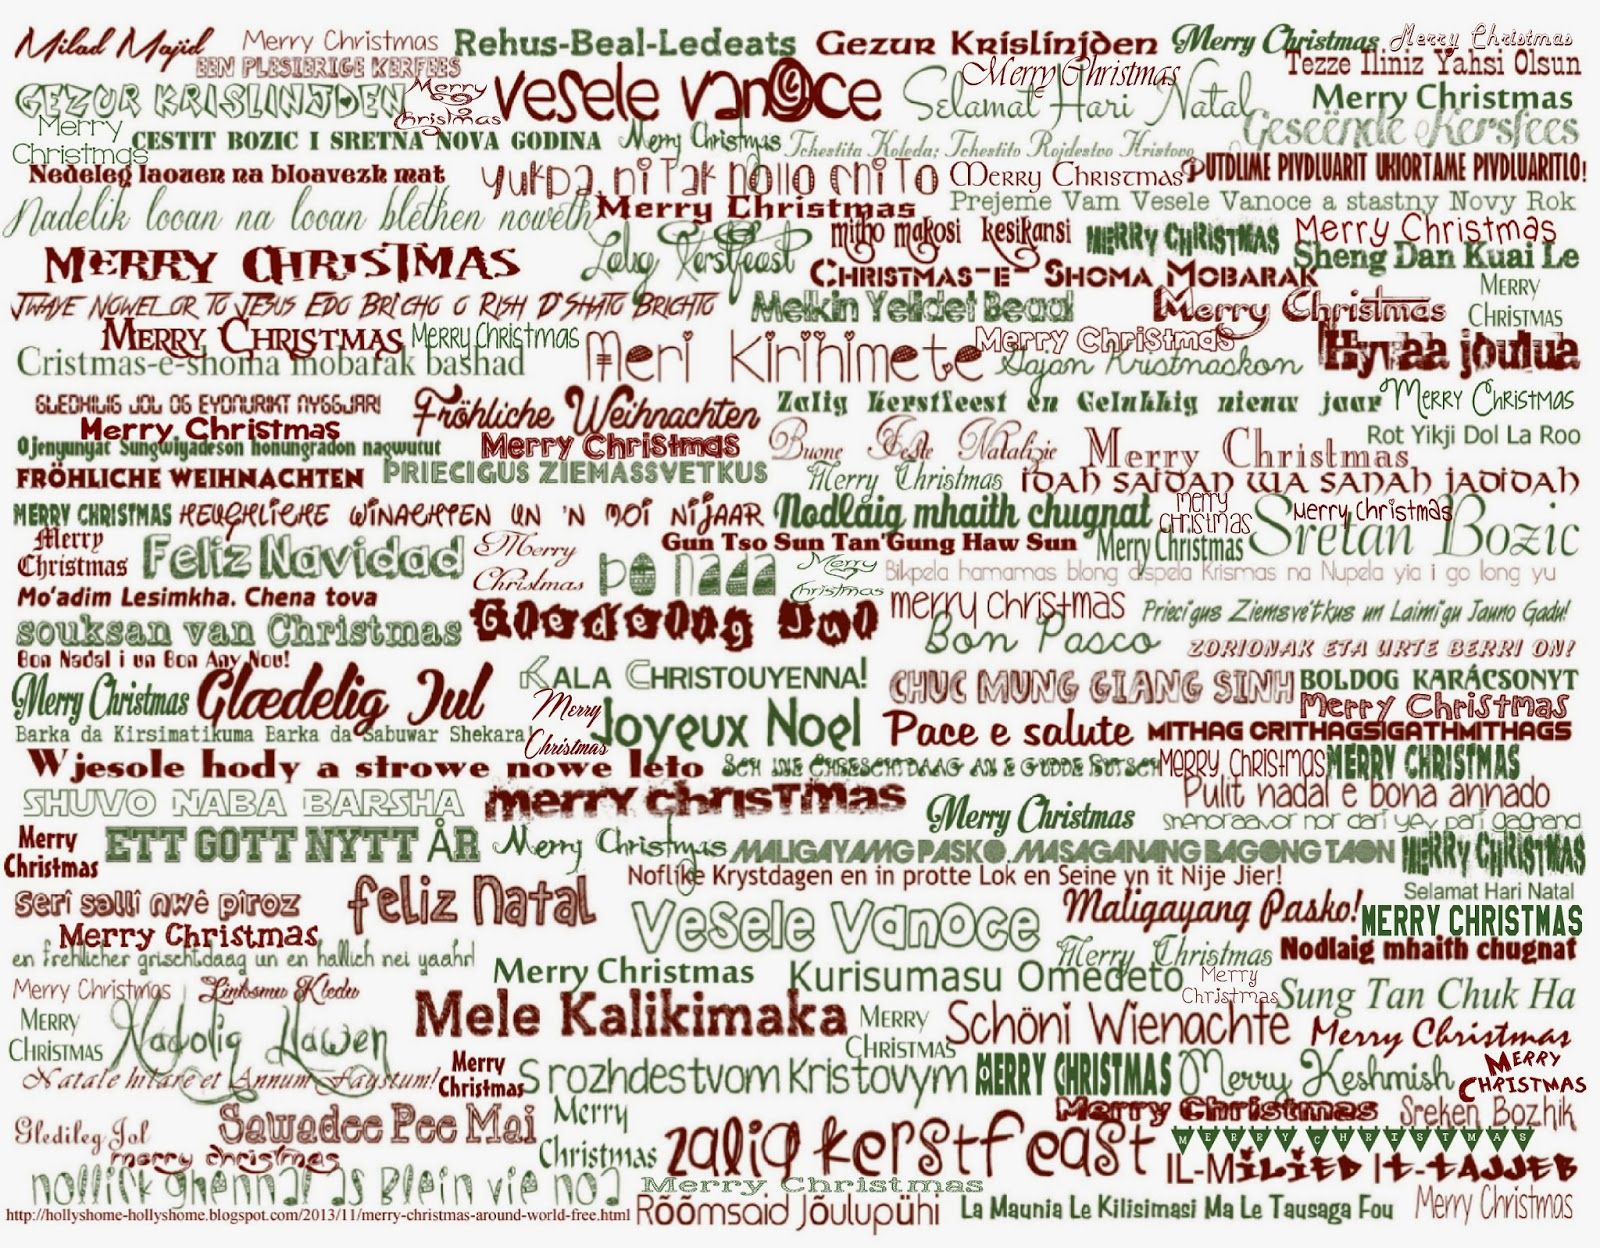 merry christmas around the world lyrics